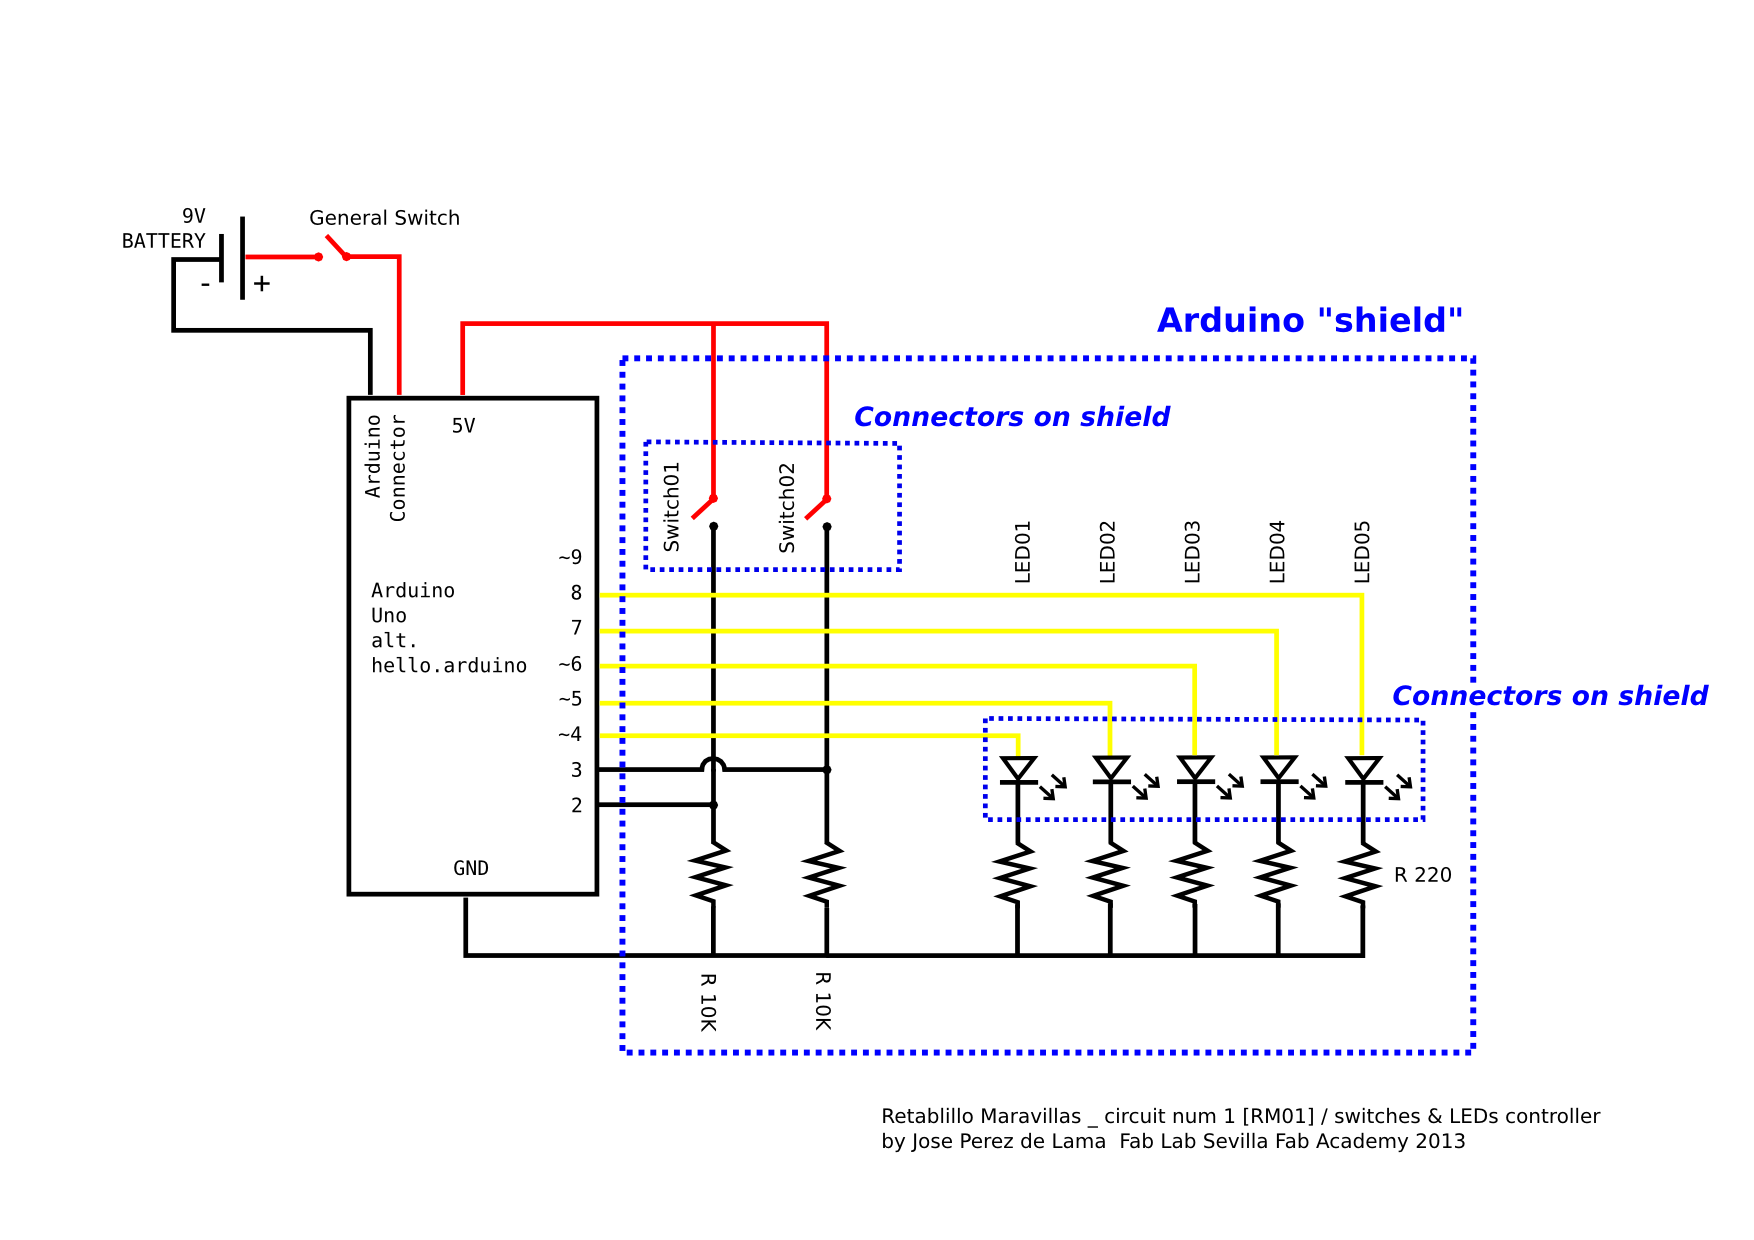 Extension Board Wiring Diagram 30 Images Control Switch Electronics Project Circuit For Diagr Thumbnail 22 20130810 Leds V2 Fab Academy 2013 Lab Sevilla Final At Cita